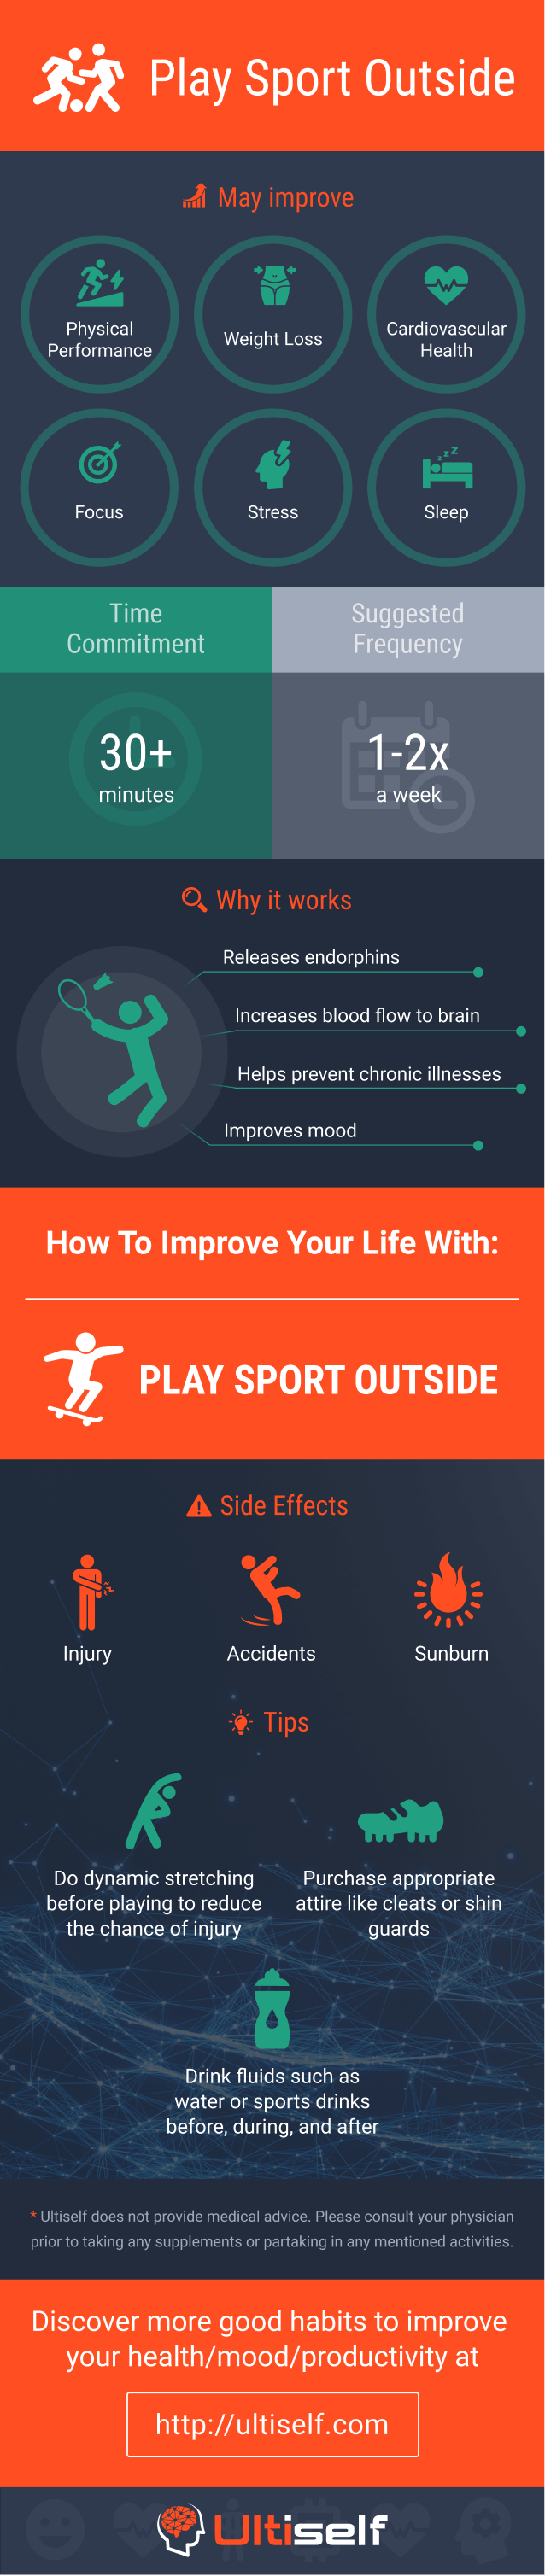 Play sport outside infographic